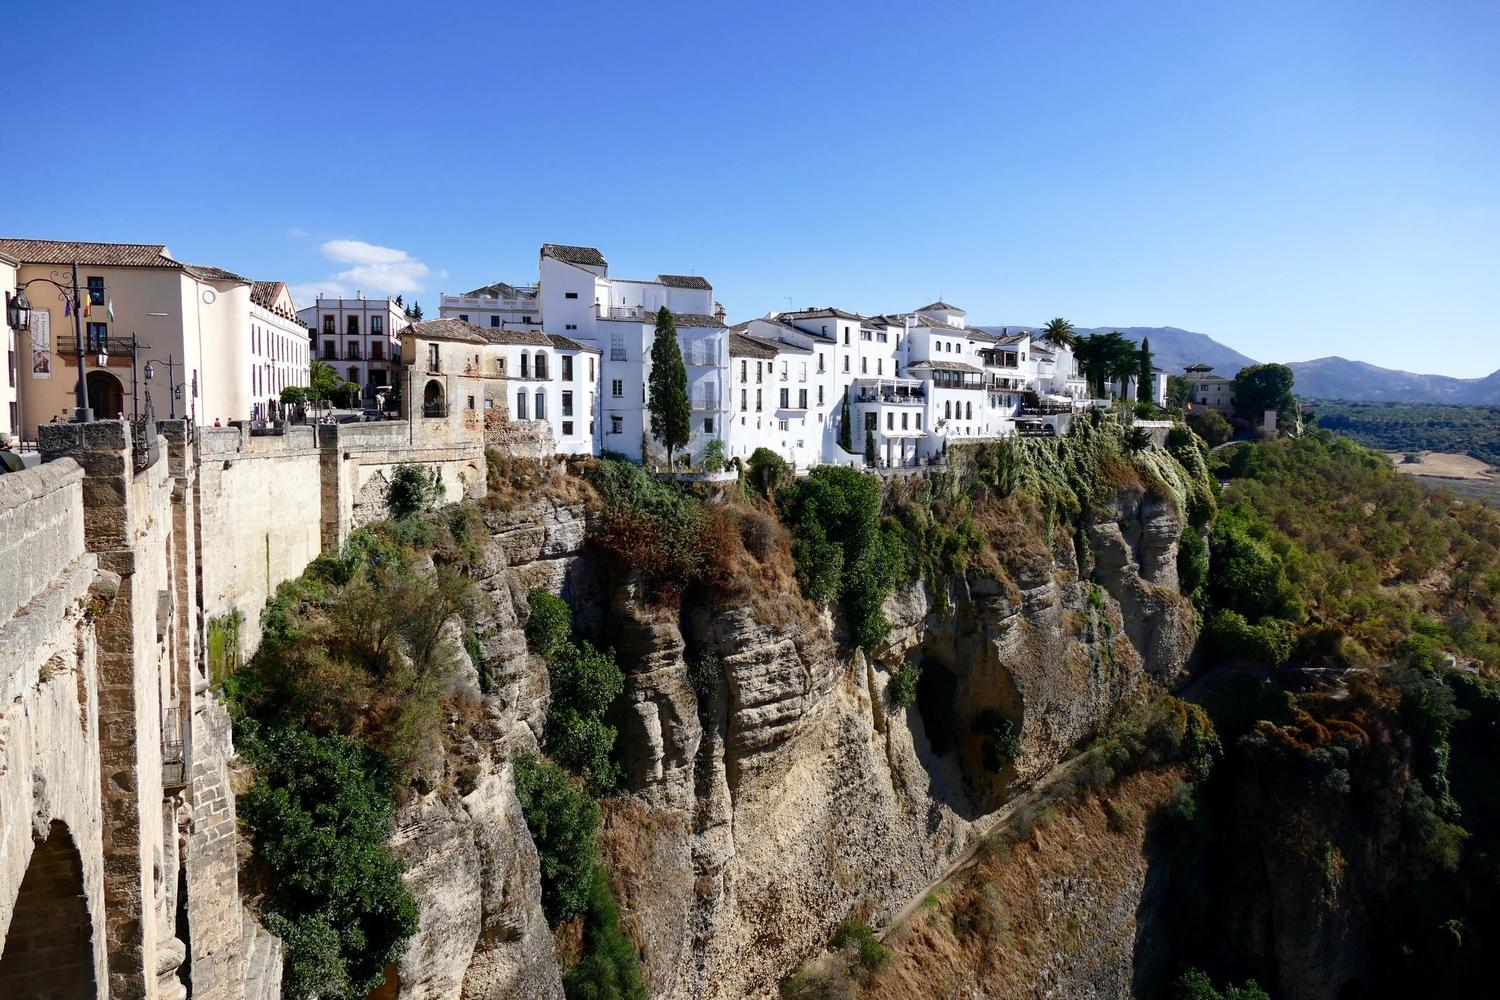 The Tajo gorge in Ronda